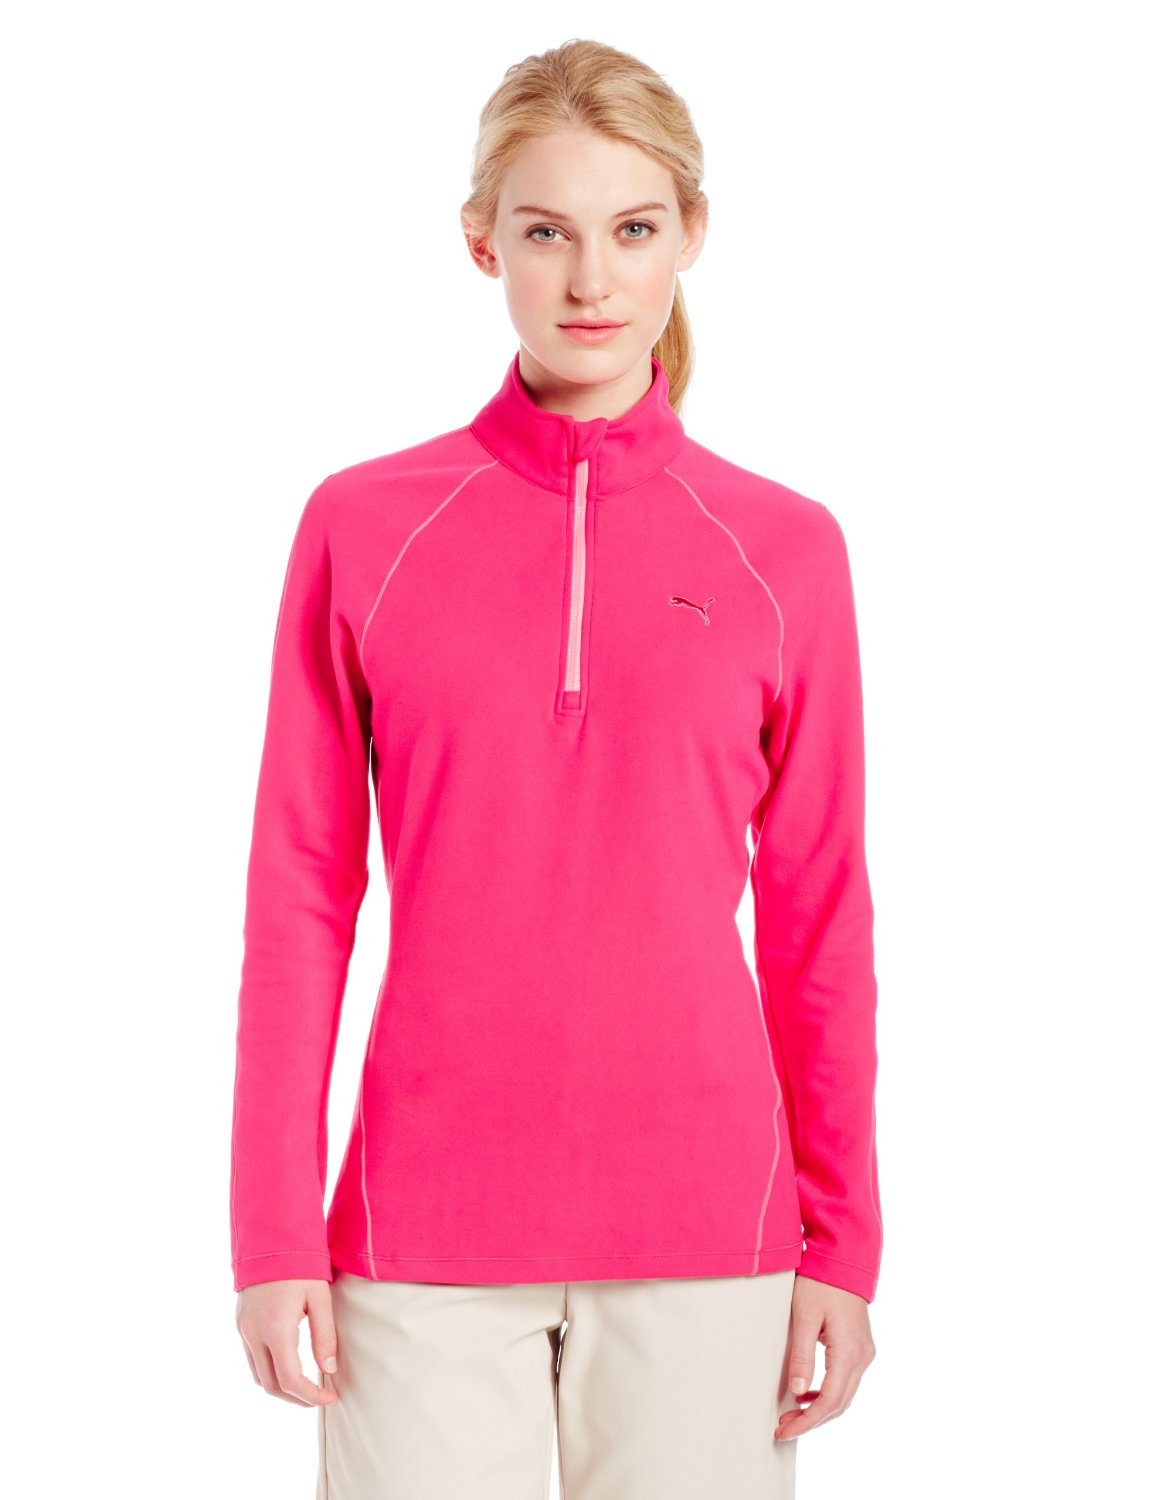 Womens Puma NA Long Sleeve Half Zip Golf Tops